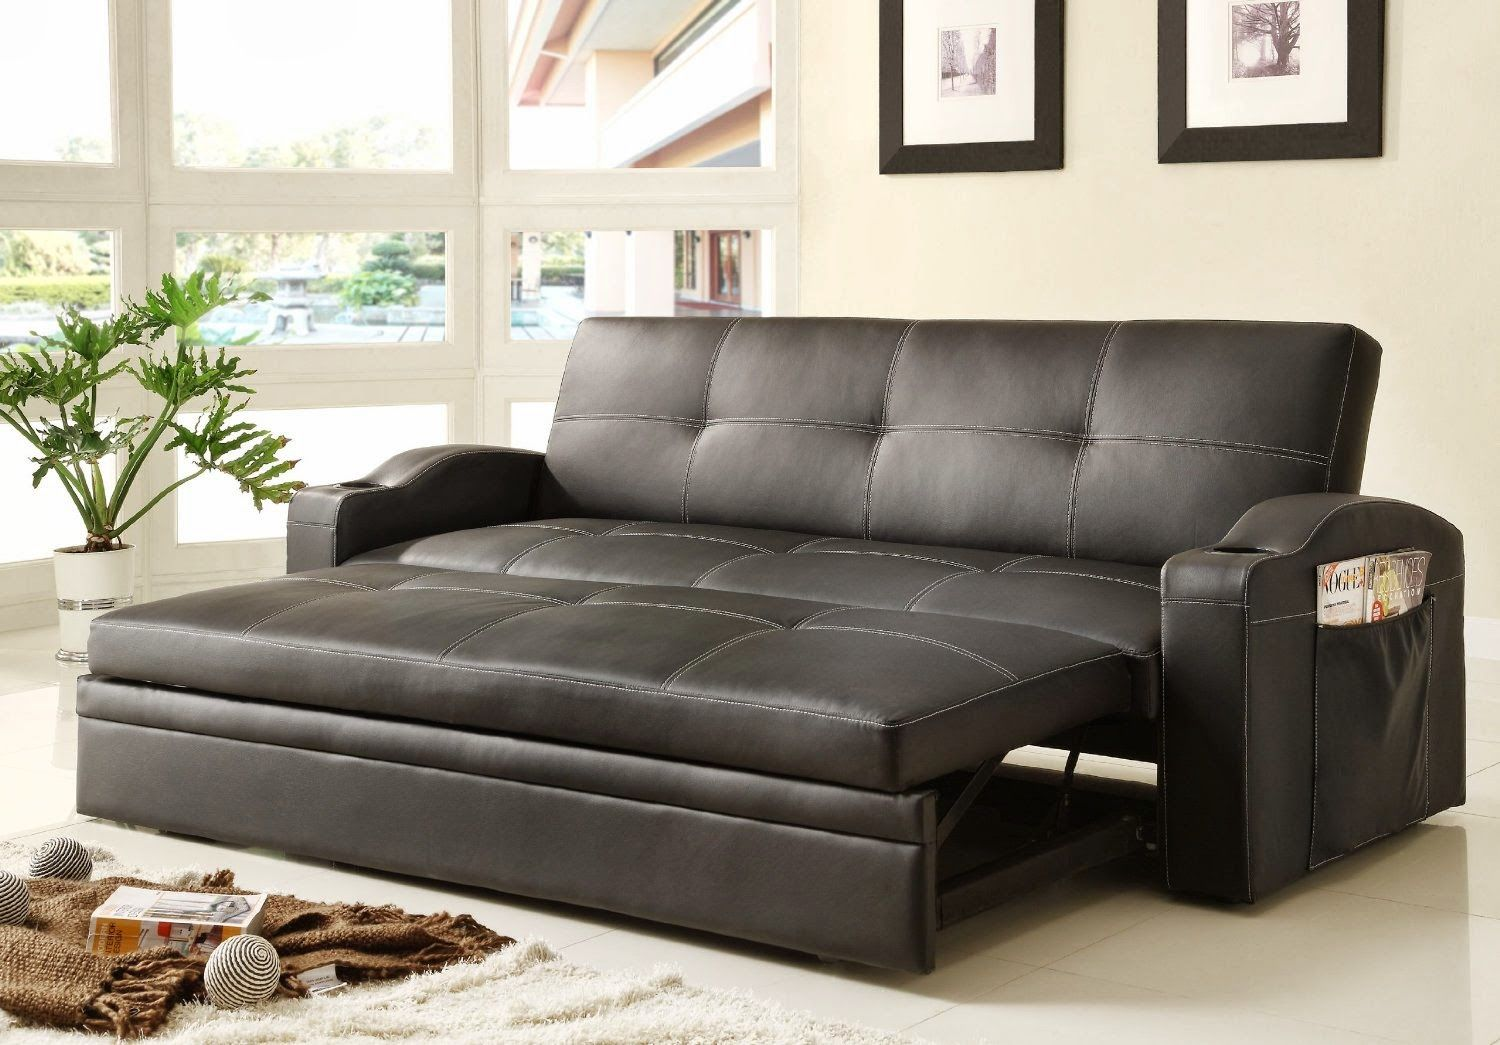 elegant leather sofa beds photo-Contemporary Leather sofa Beds Pattern